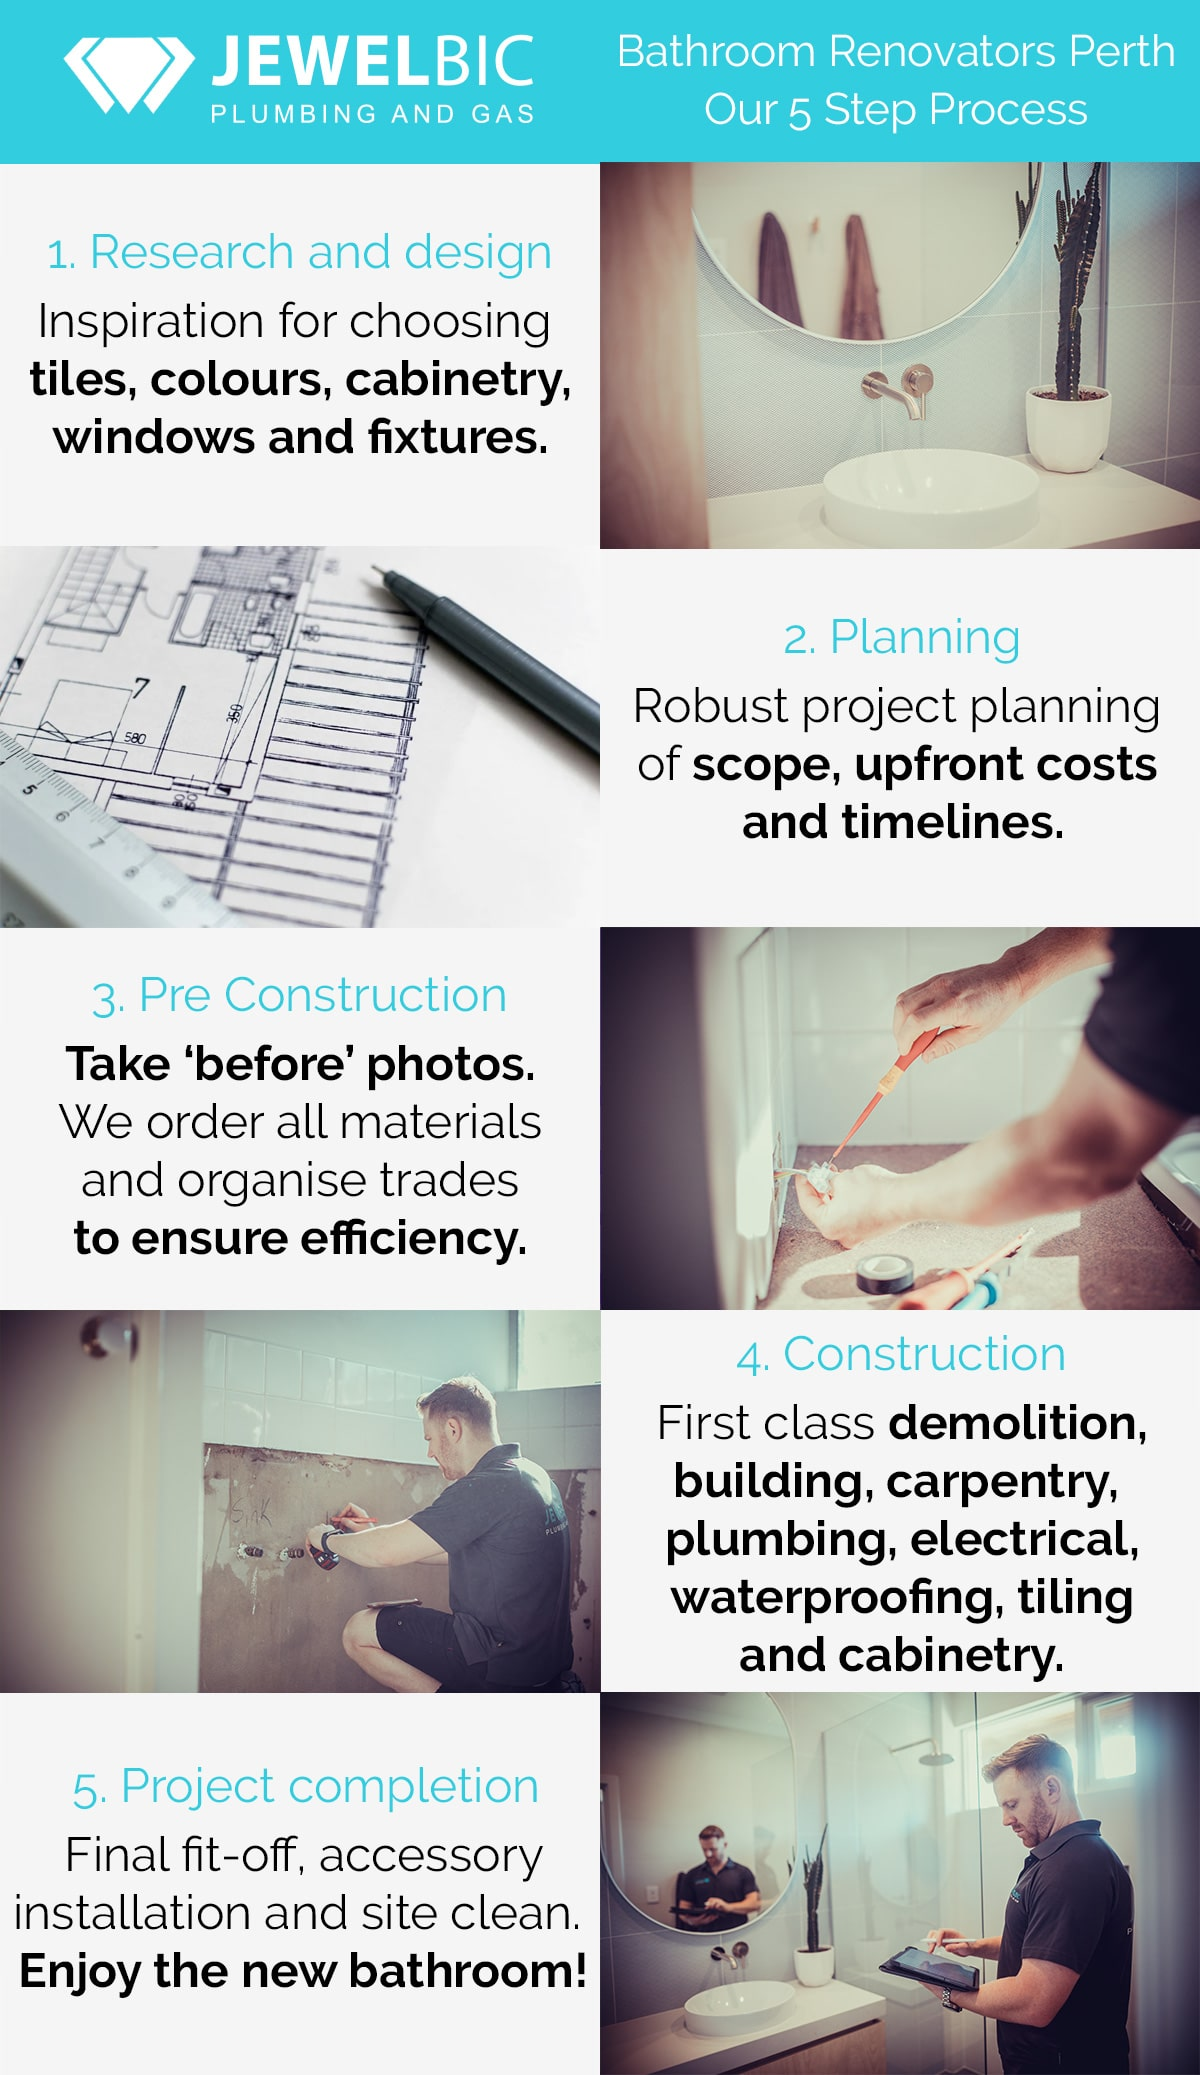 Bathroom Renovators Perth: Our 5 Step Process - Jewelbic Plumbing & Gas